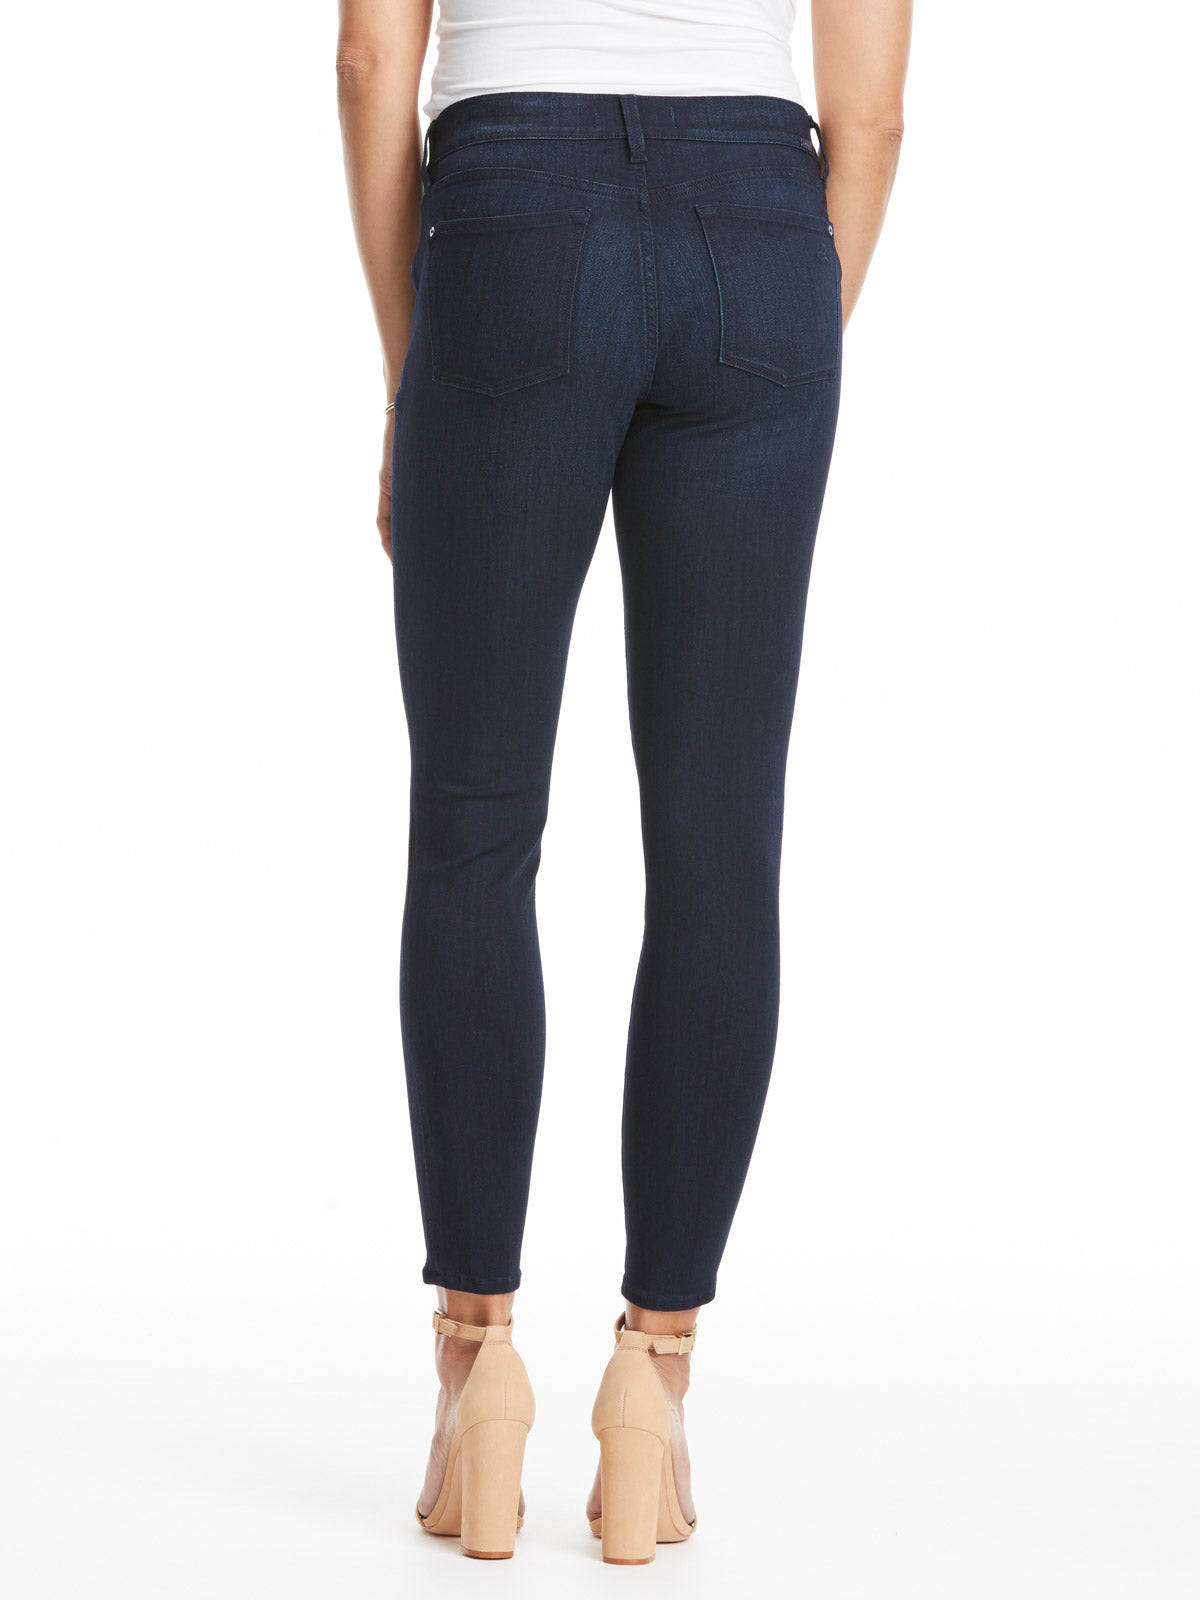 TILDEN | DL1961 Emma Maternity Jean - Token